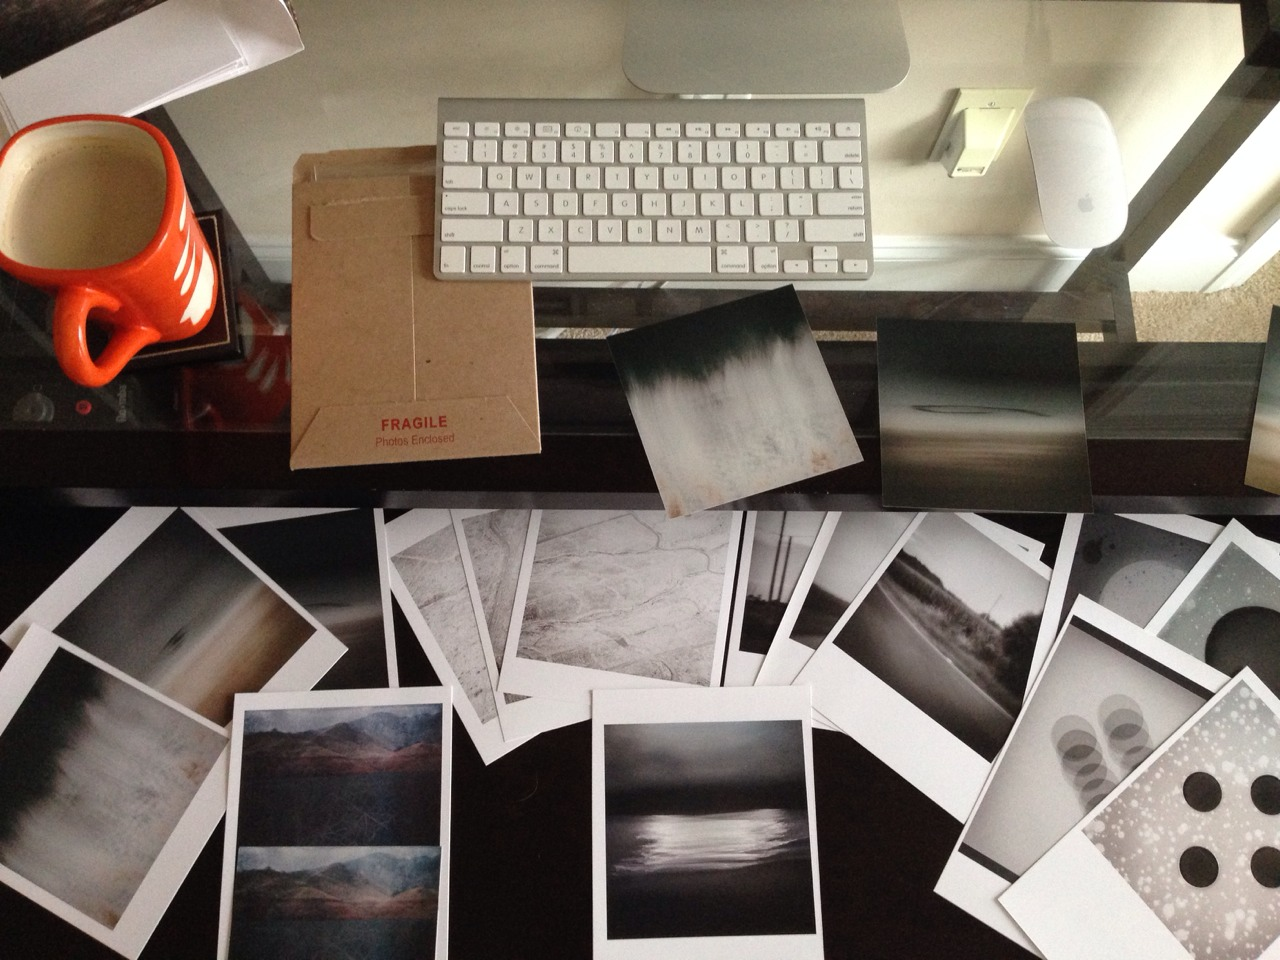 One last round of print proofing before my show at Ross Gallery - Charlotte, NC. Opens in May